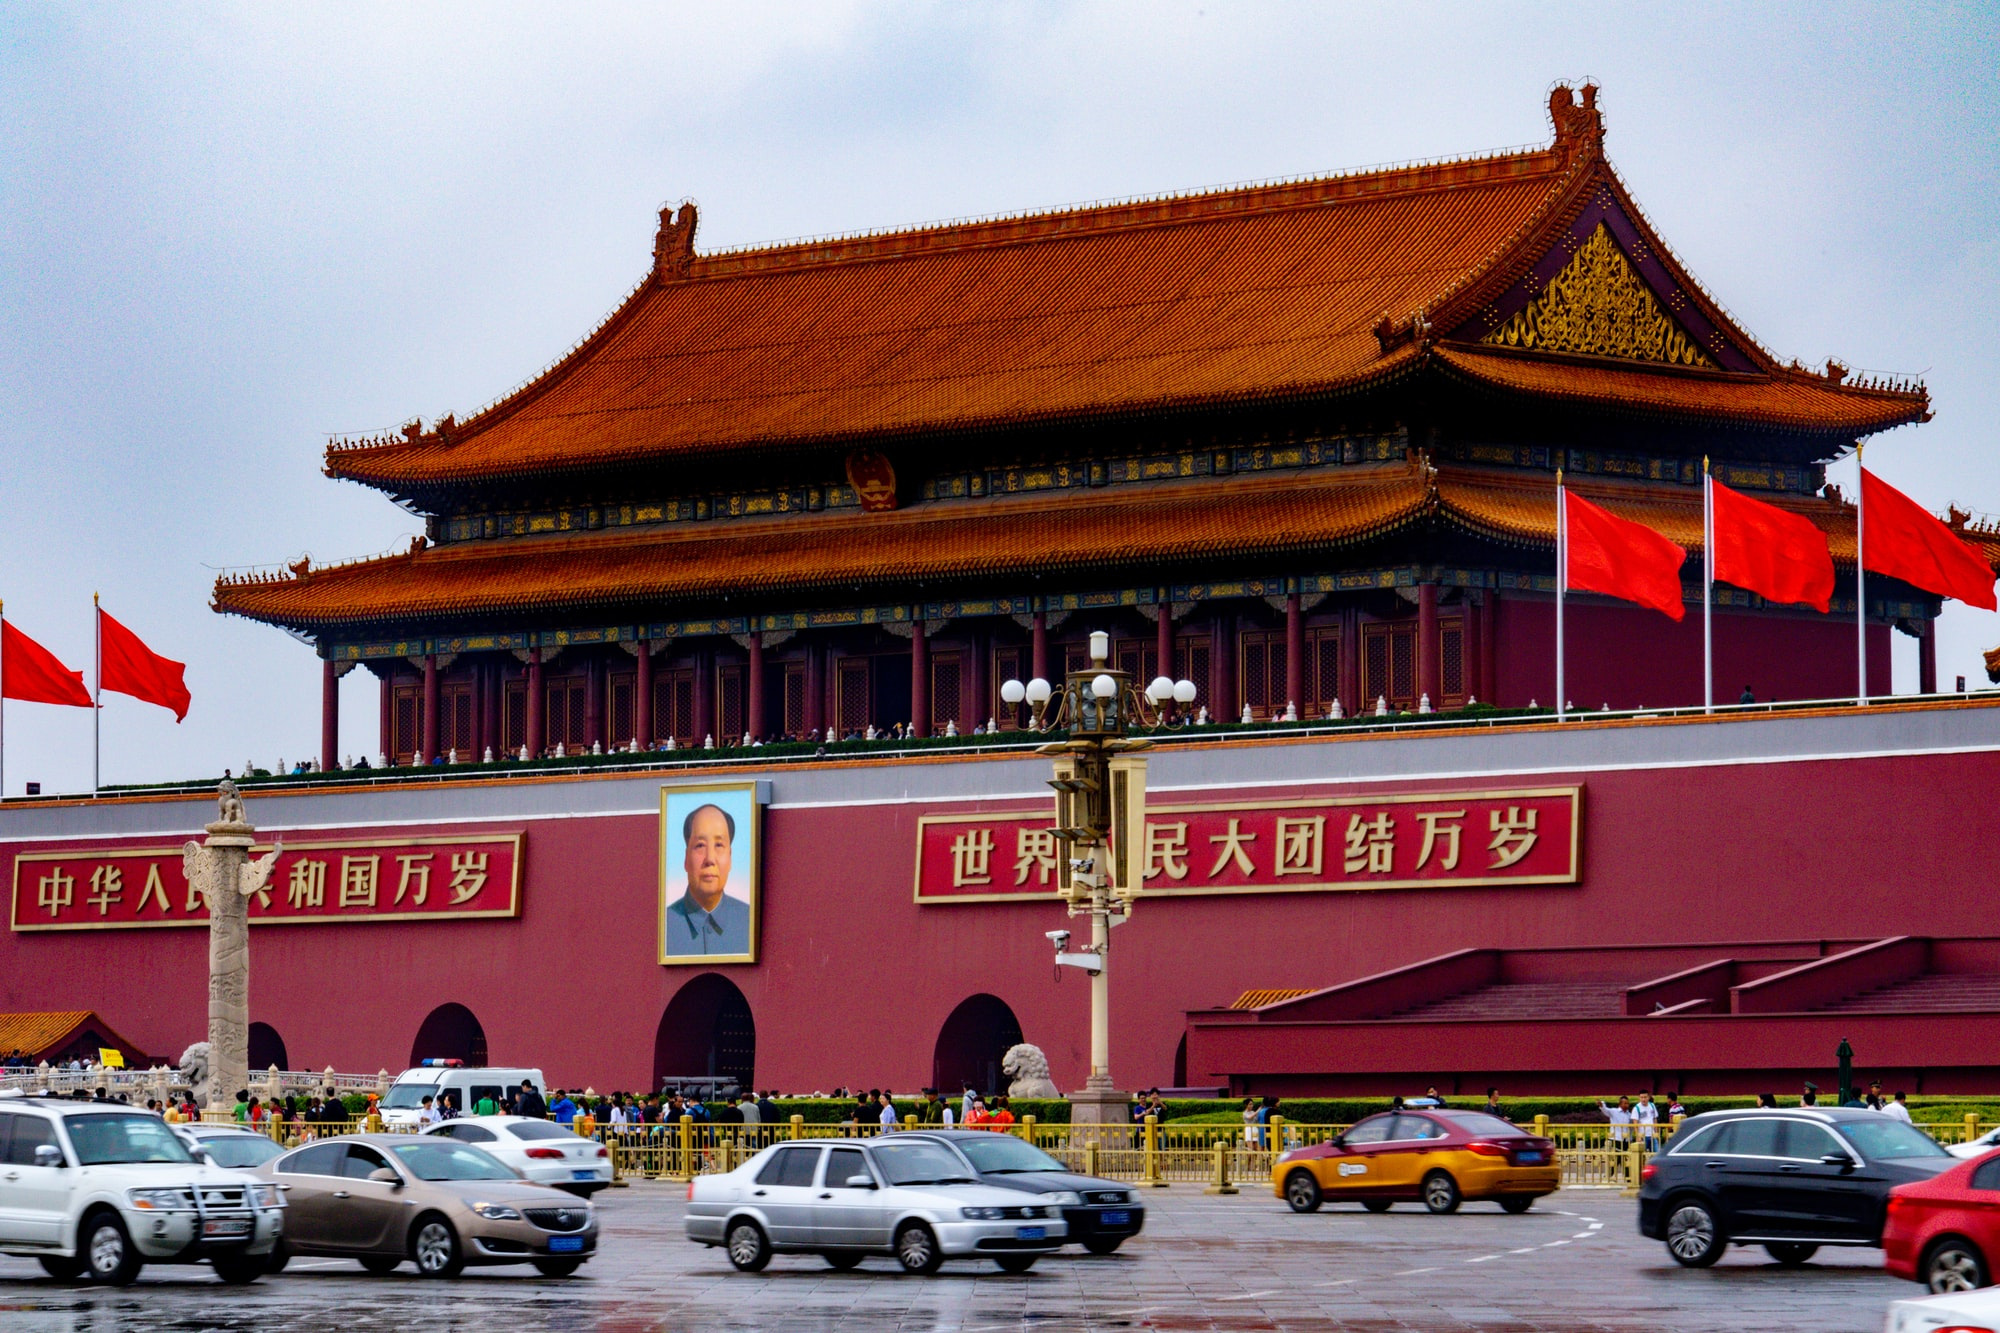 The Forbidden City, Beijing, China, taken from Tiananmen Square.